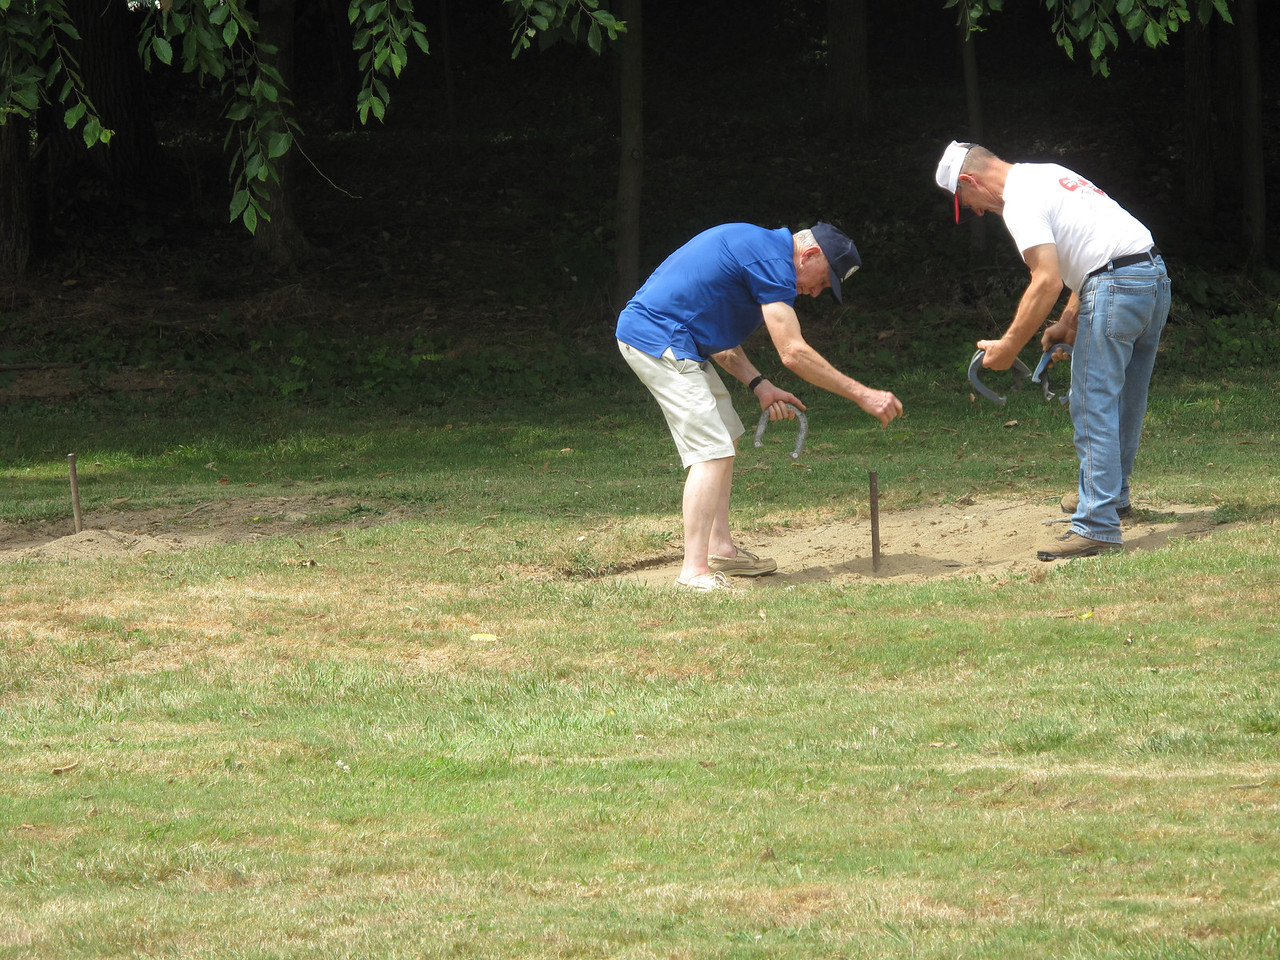 072516seville05 ELIZABETH DOBBINS / GAZETTE Seville resident Paul Oberli, 79, left, plays a game of horseshoes with 60-year-old Carl Perry, also of Seville, Village of Seville Bicentennial Celebration.